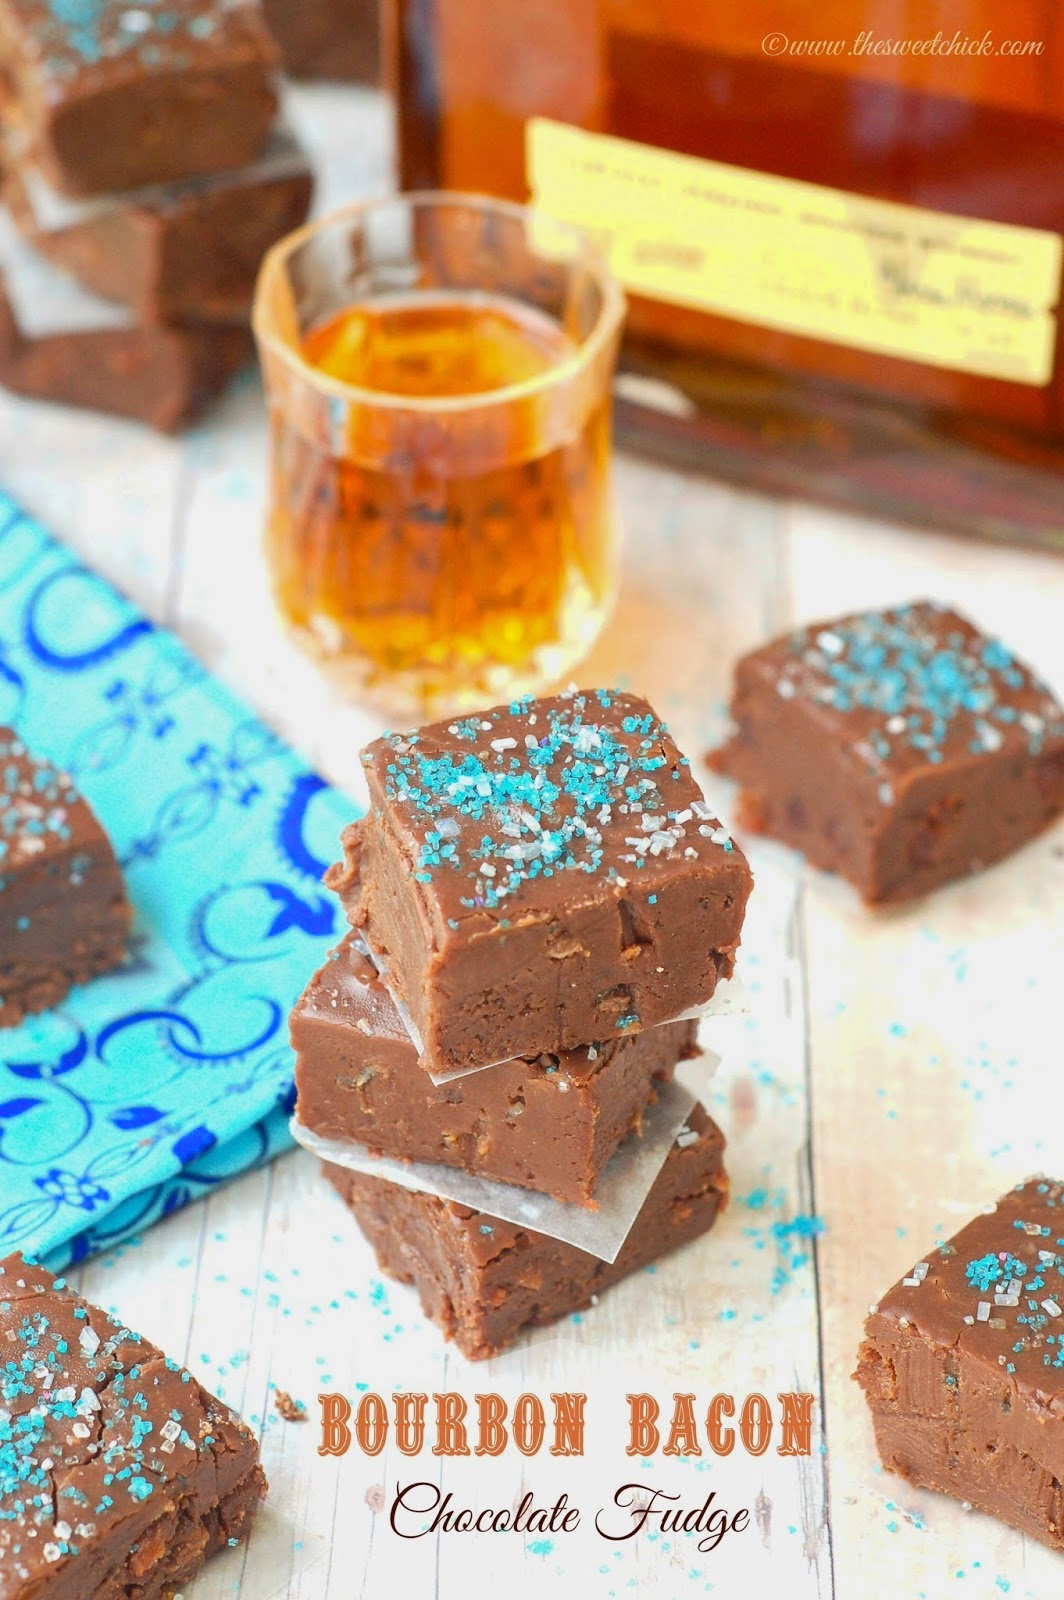 Bourbon Bacon Fudge @www.thesweetchick.com